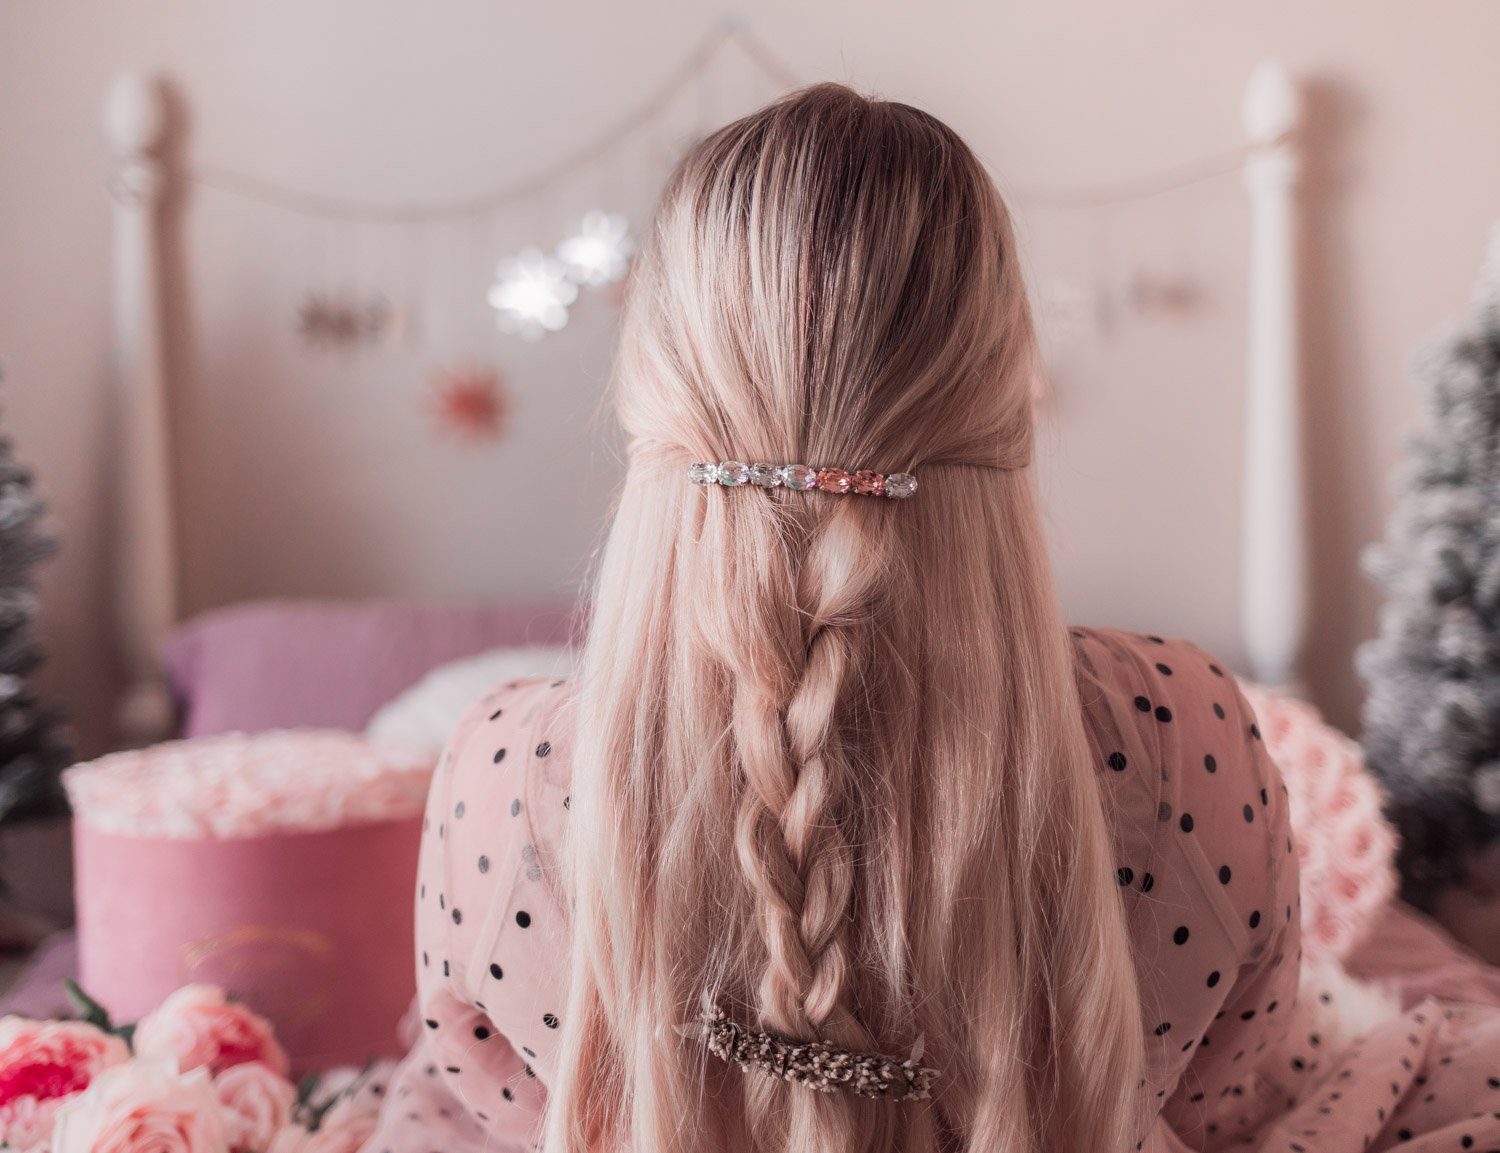 Elizabeth Hugen from Lizzie in Lace shares 4 easy holiday hairstyles to recreate